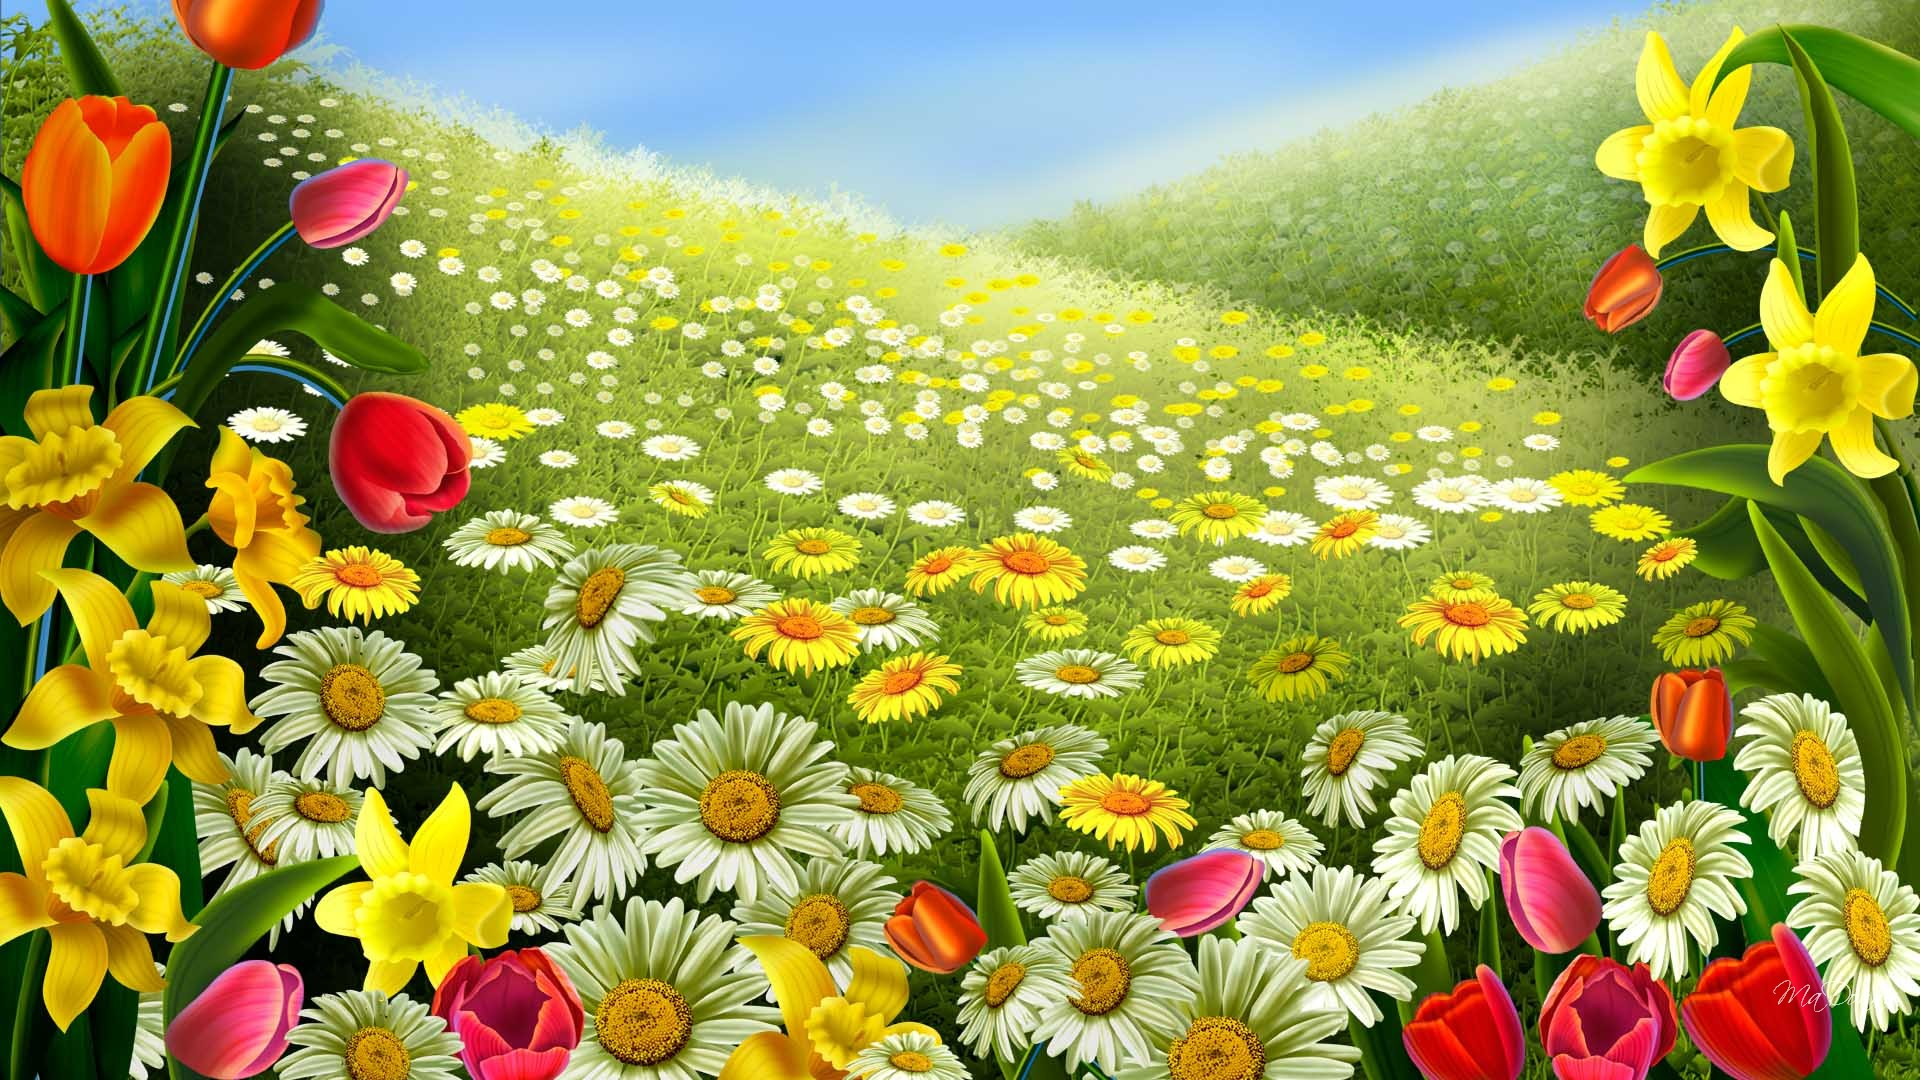 best sunflower painting spring wallpapers free download for desktop